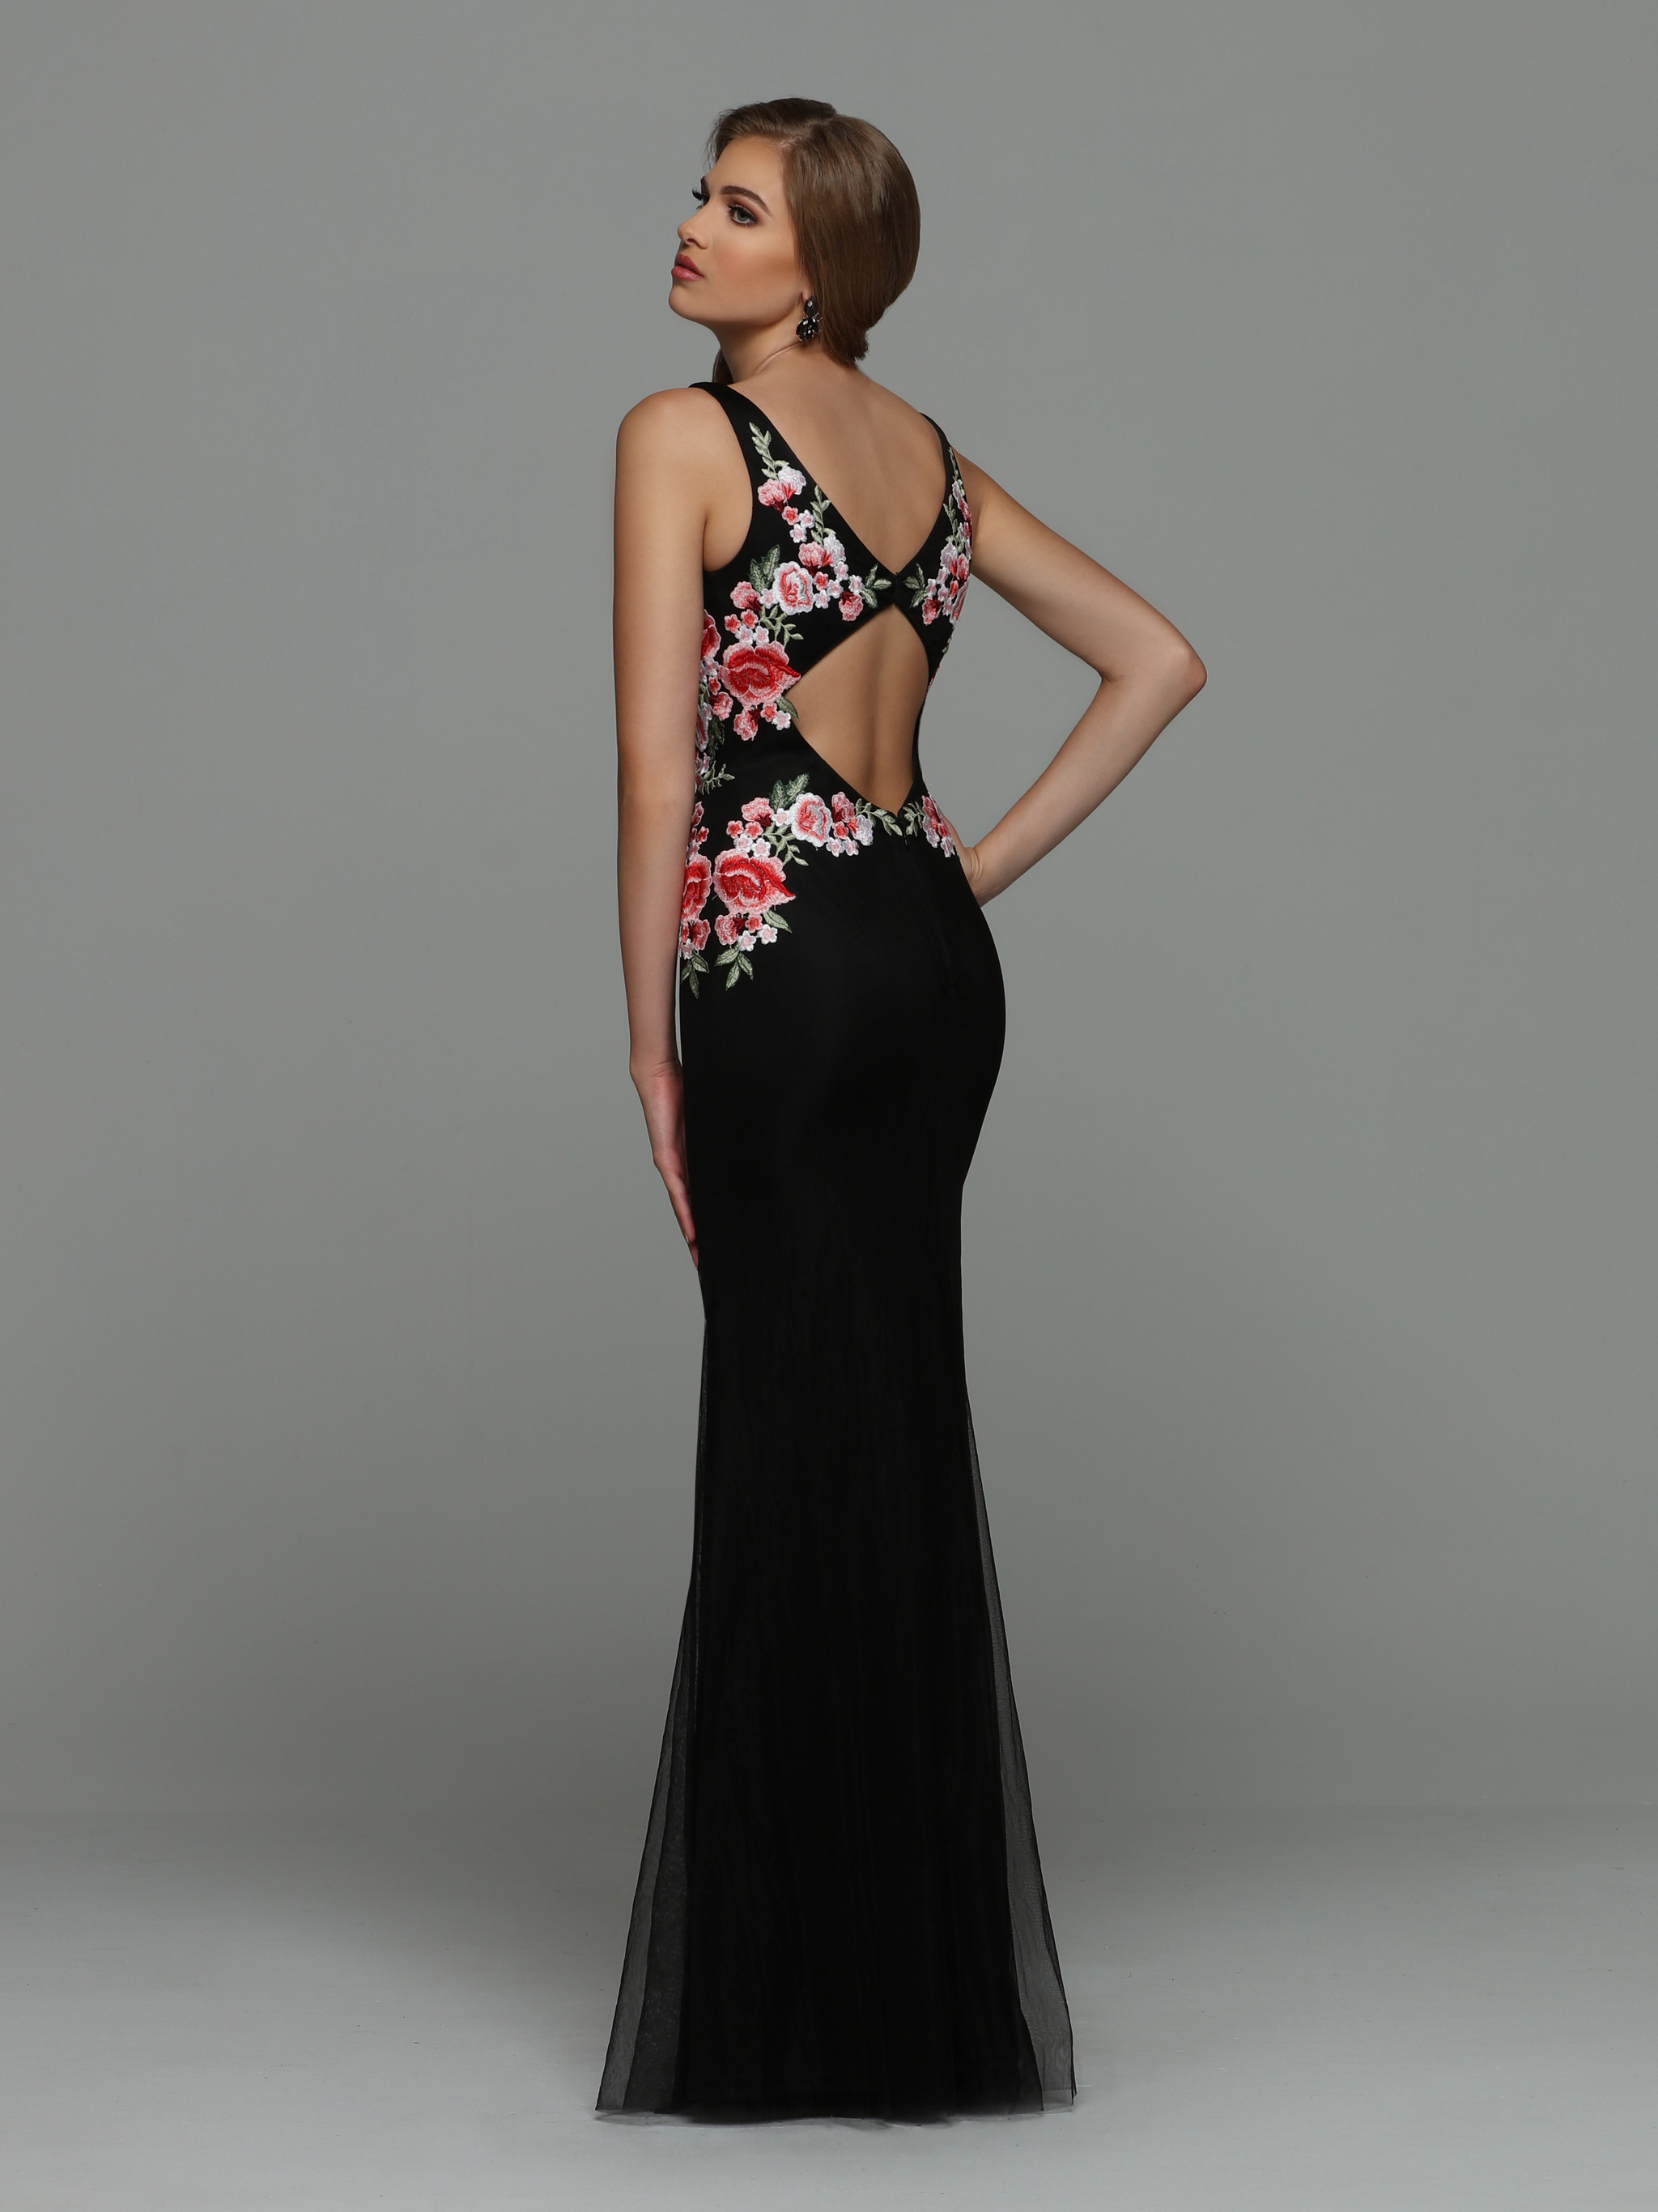 Image showing back view of style #71967